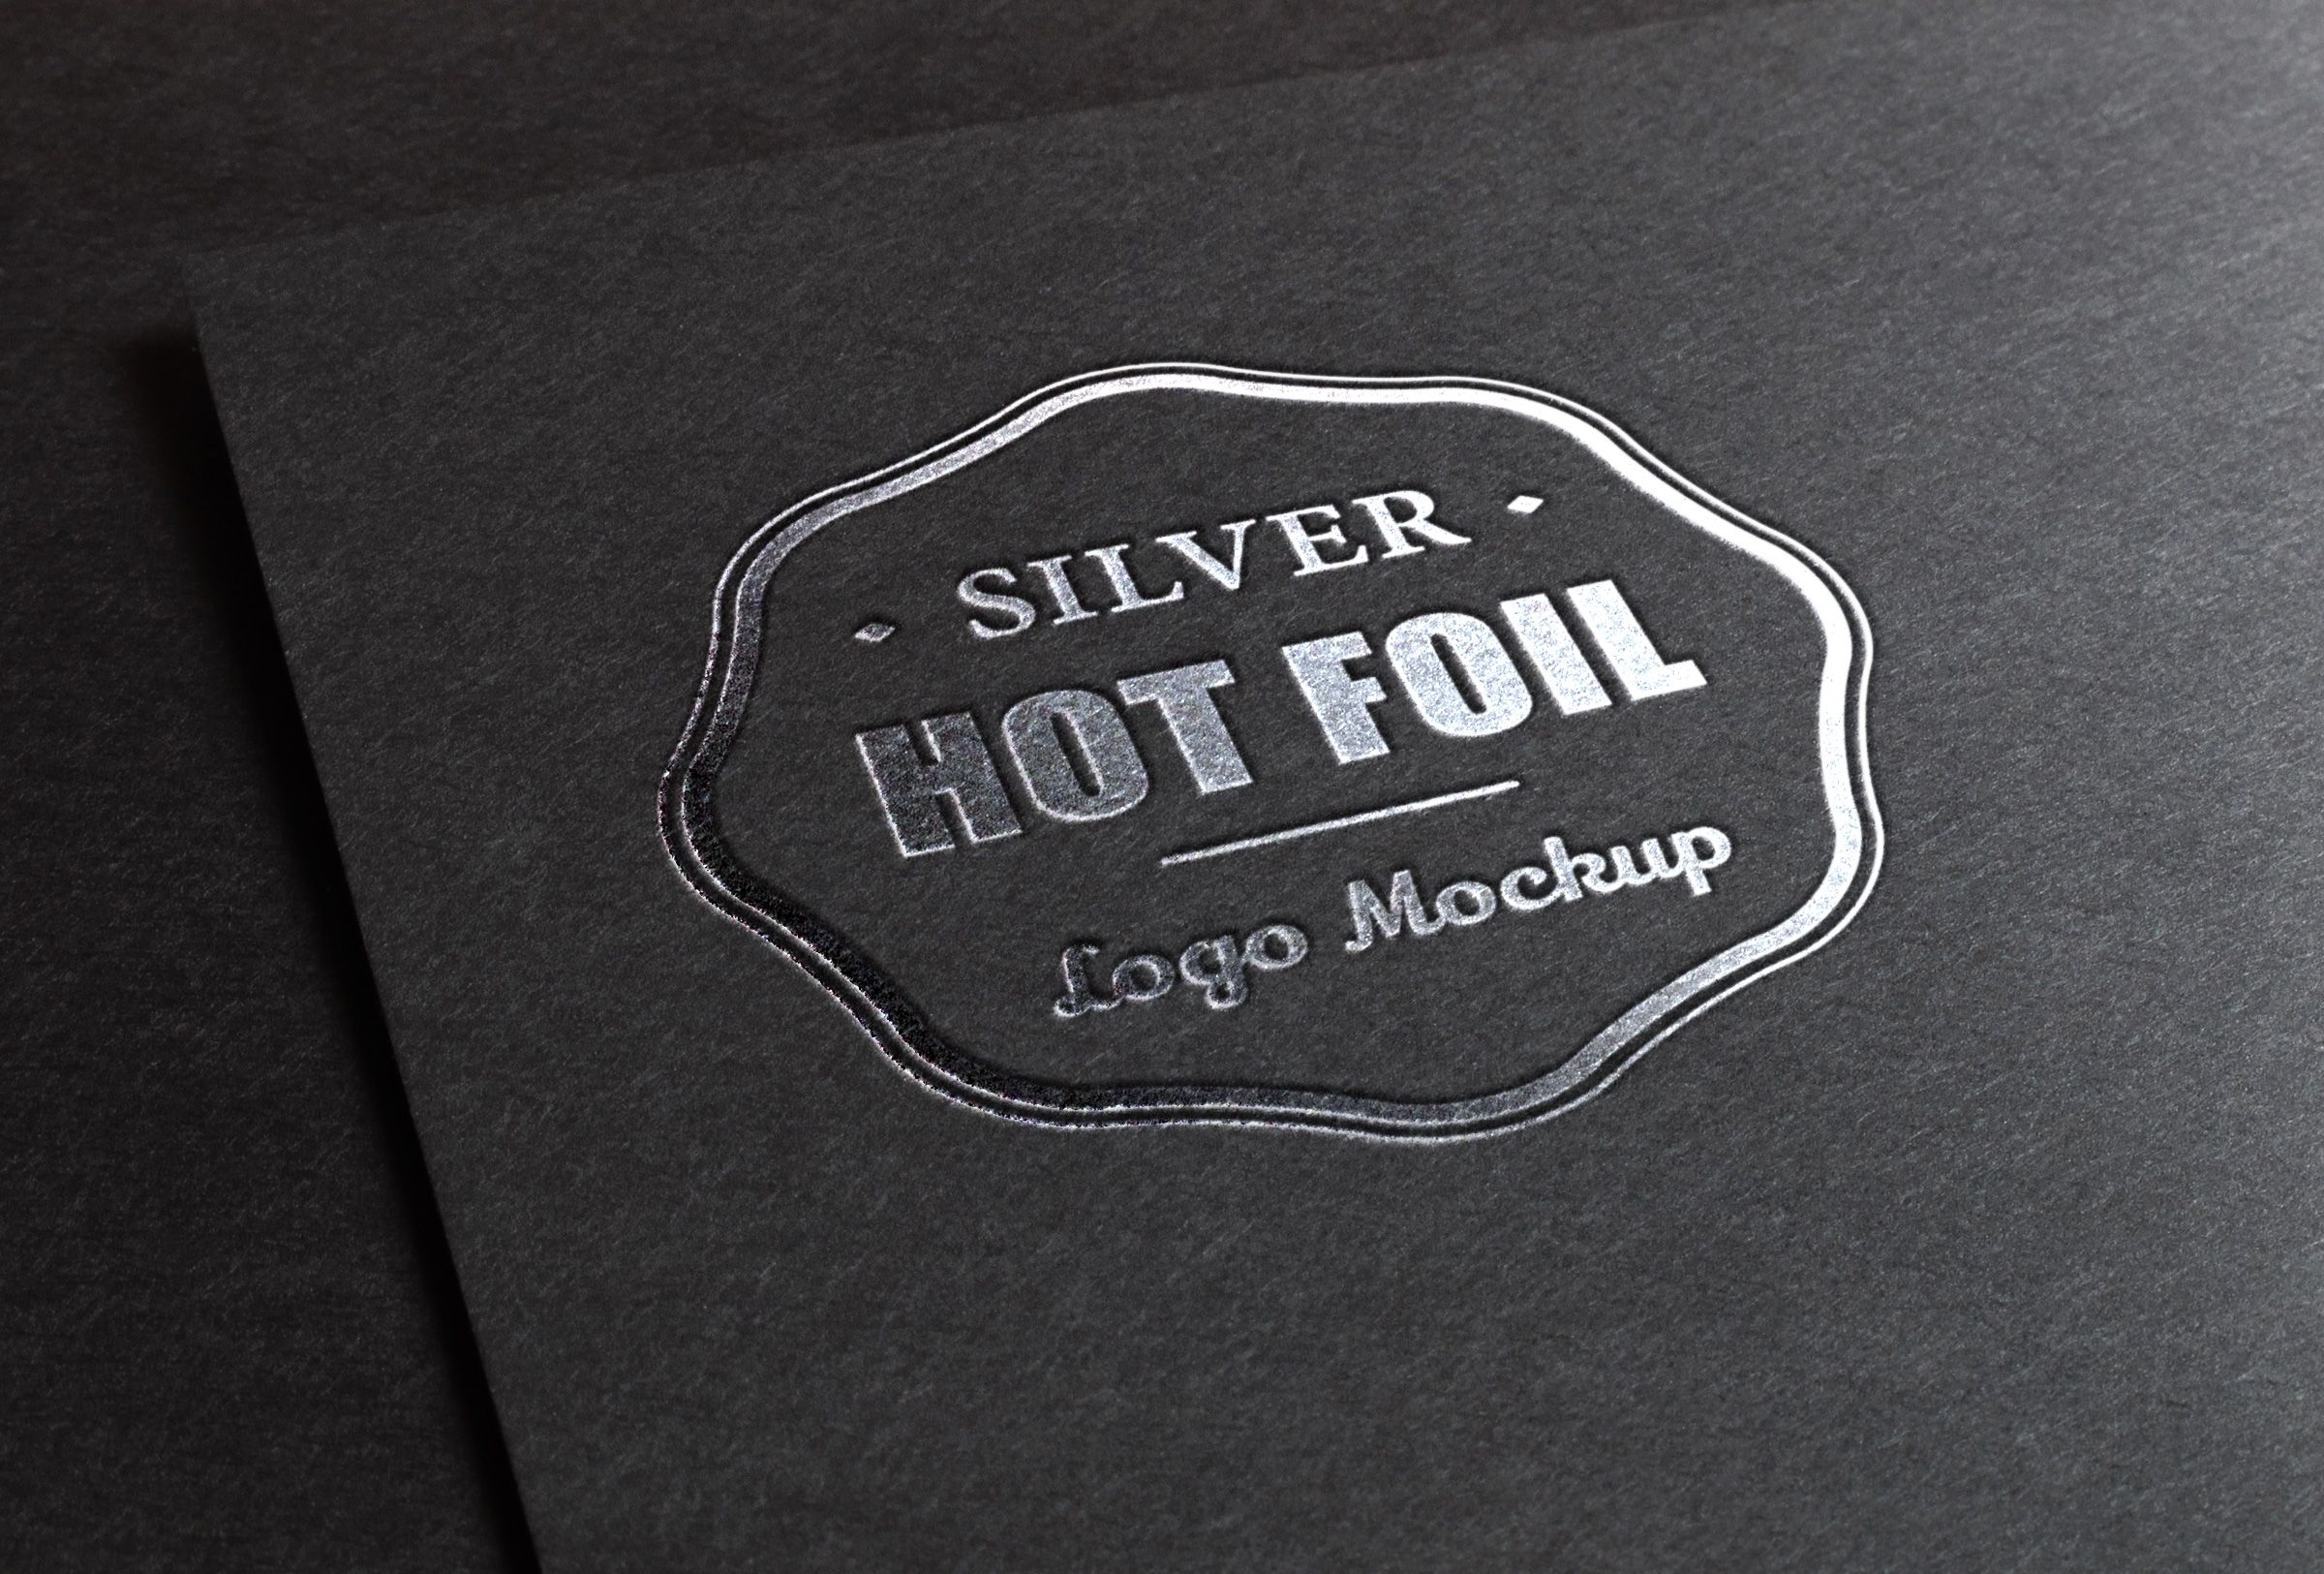 Silver Foil Stamp Logo MockUp FREE Download Create A Fantastic Presentation For Your Lettering Or Signage Have Fun With It